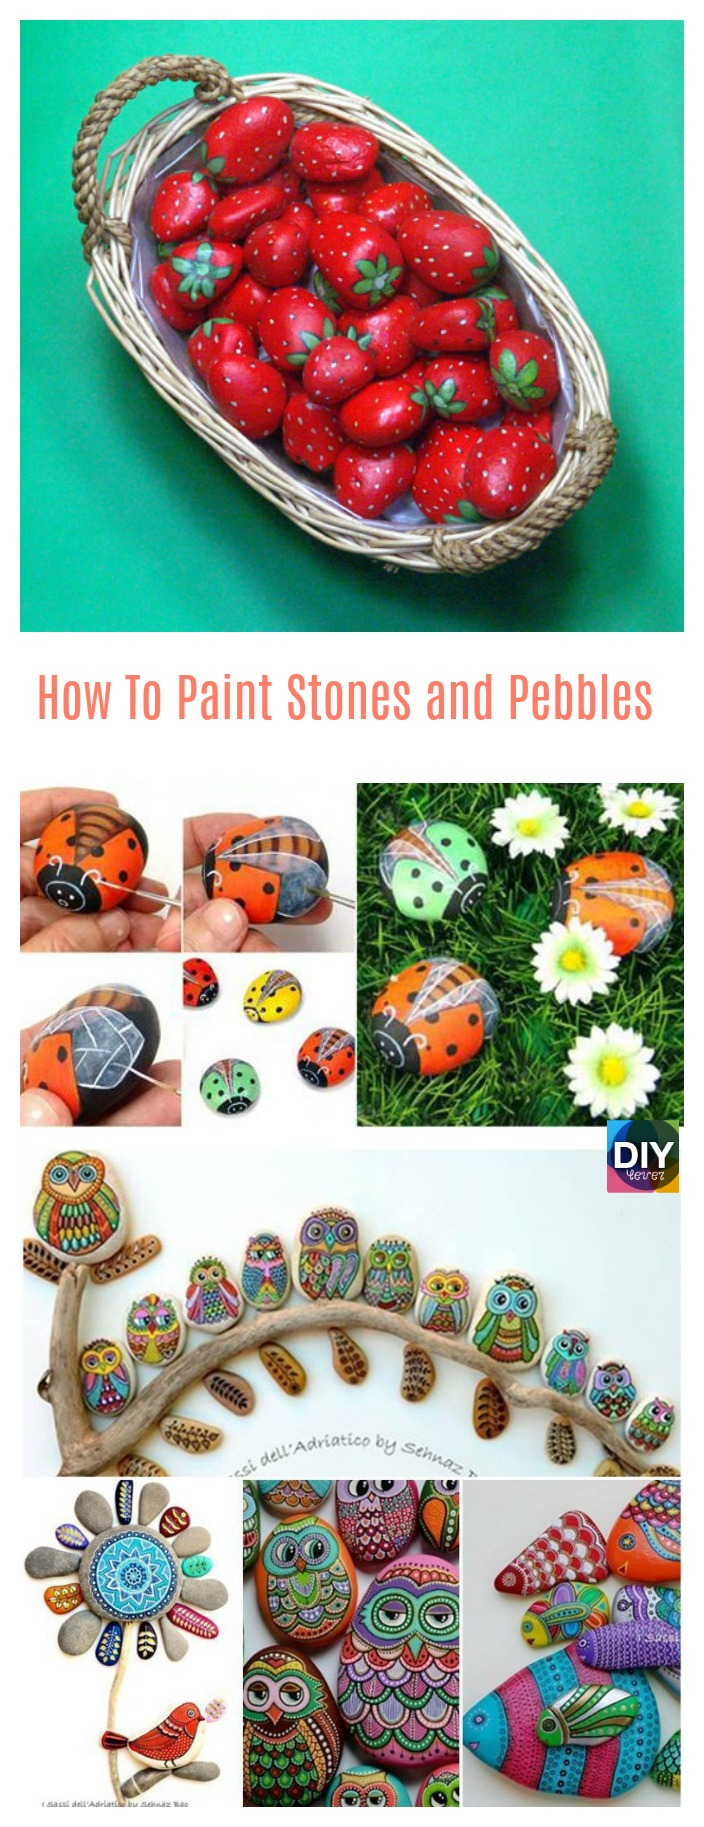 diy4ever- How To Paint Stones and Pebbles